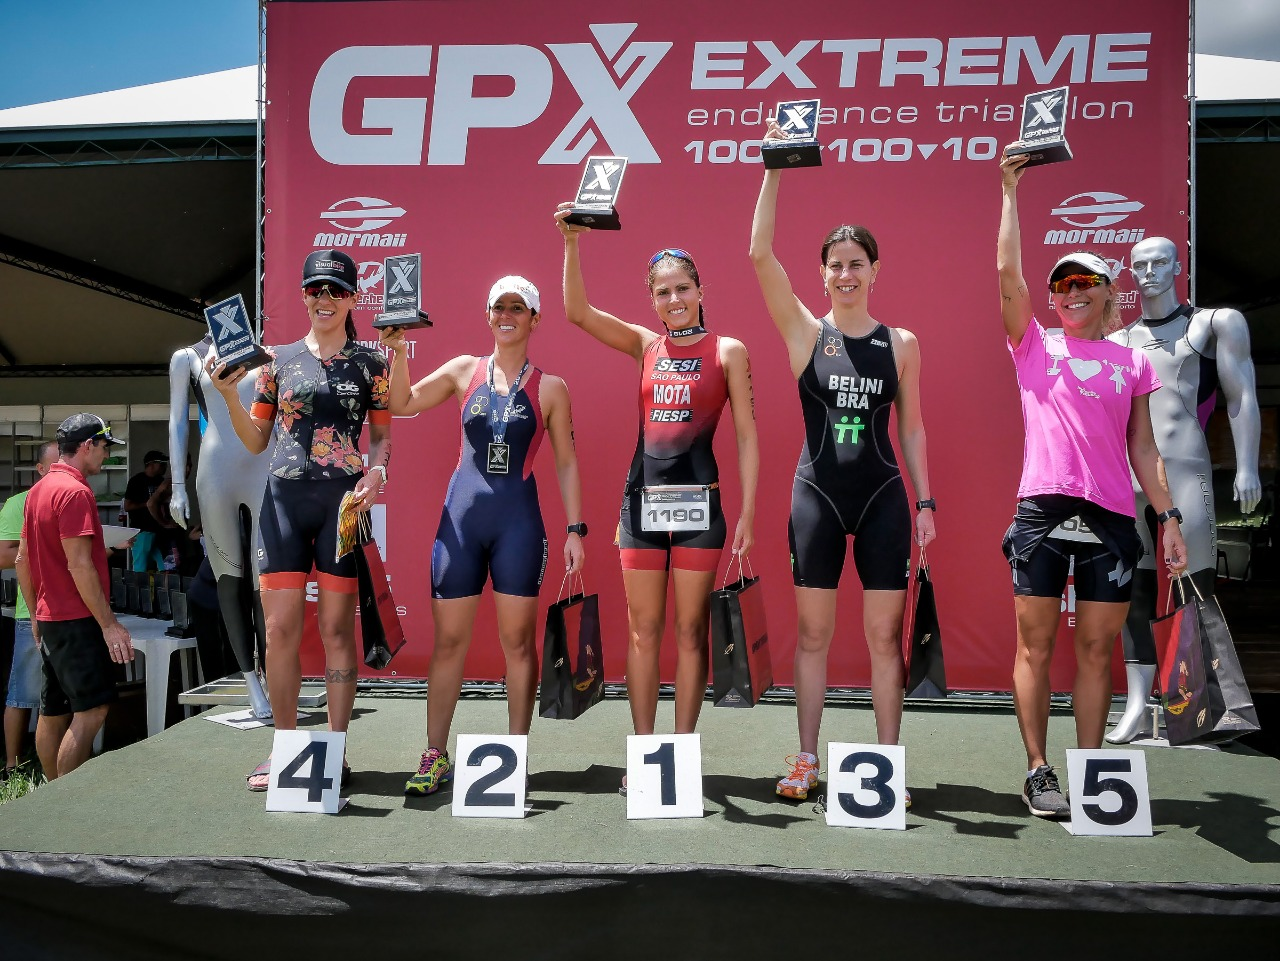 gp extreme triathlon mormaii (3)